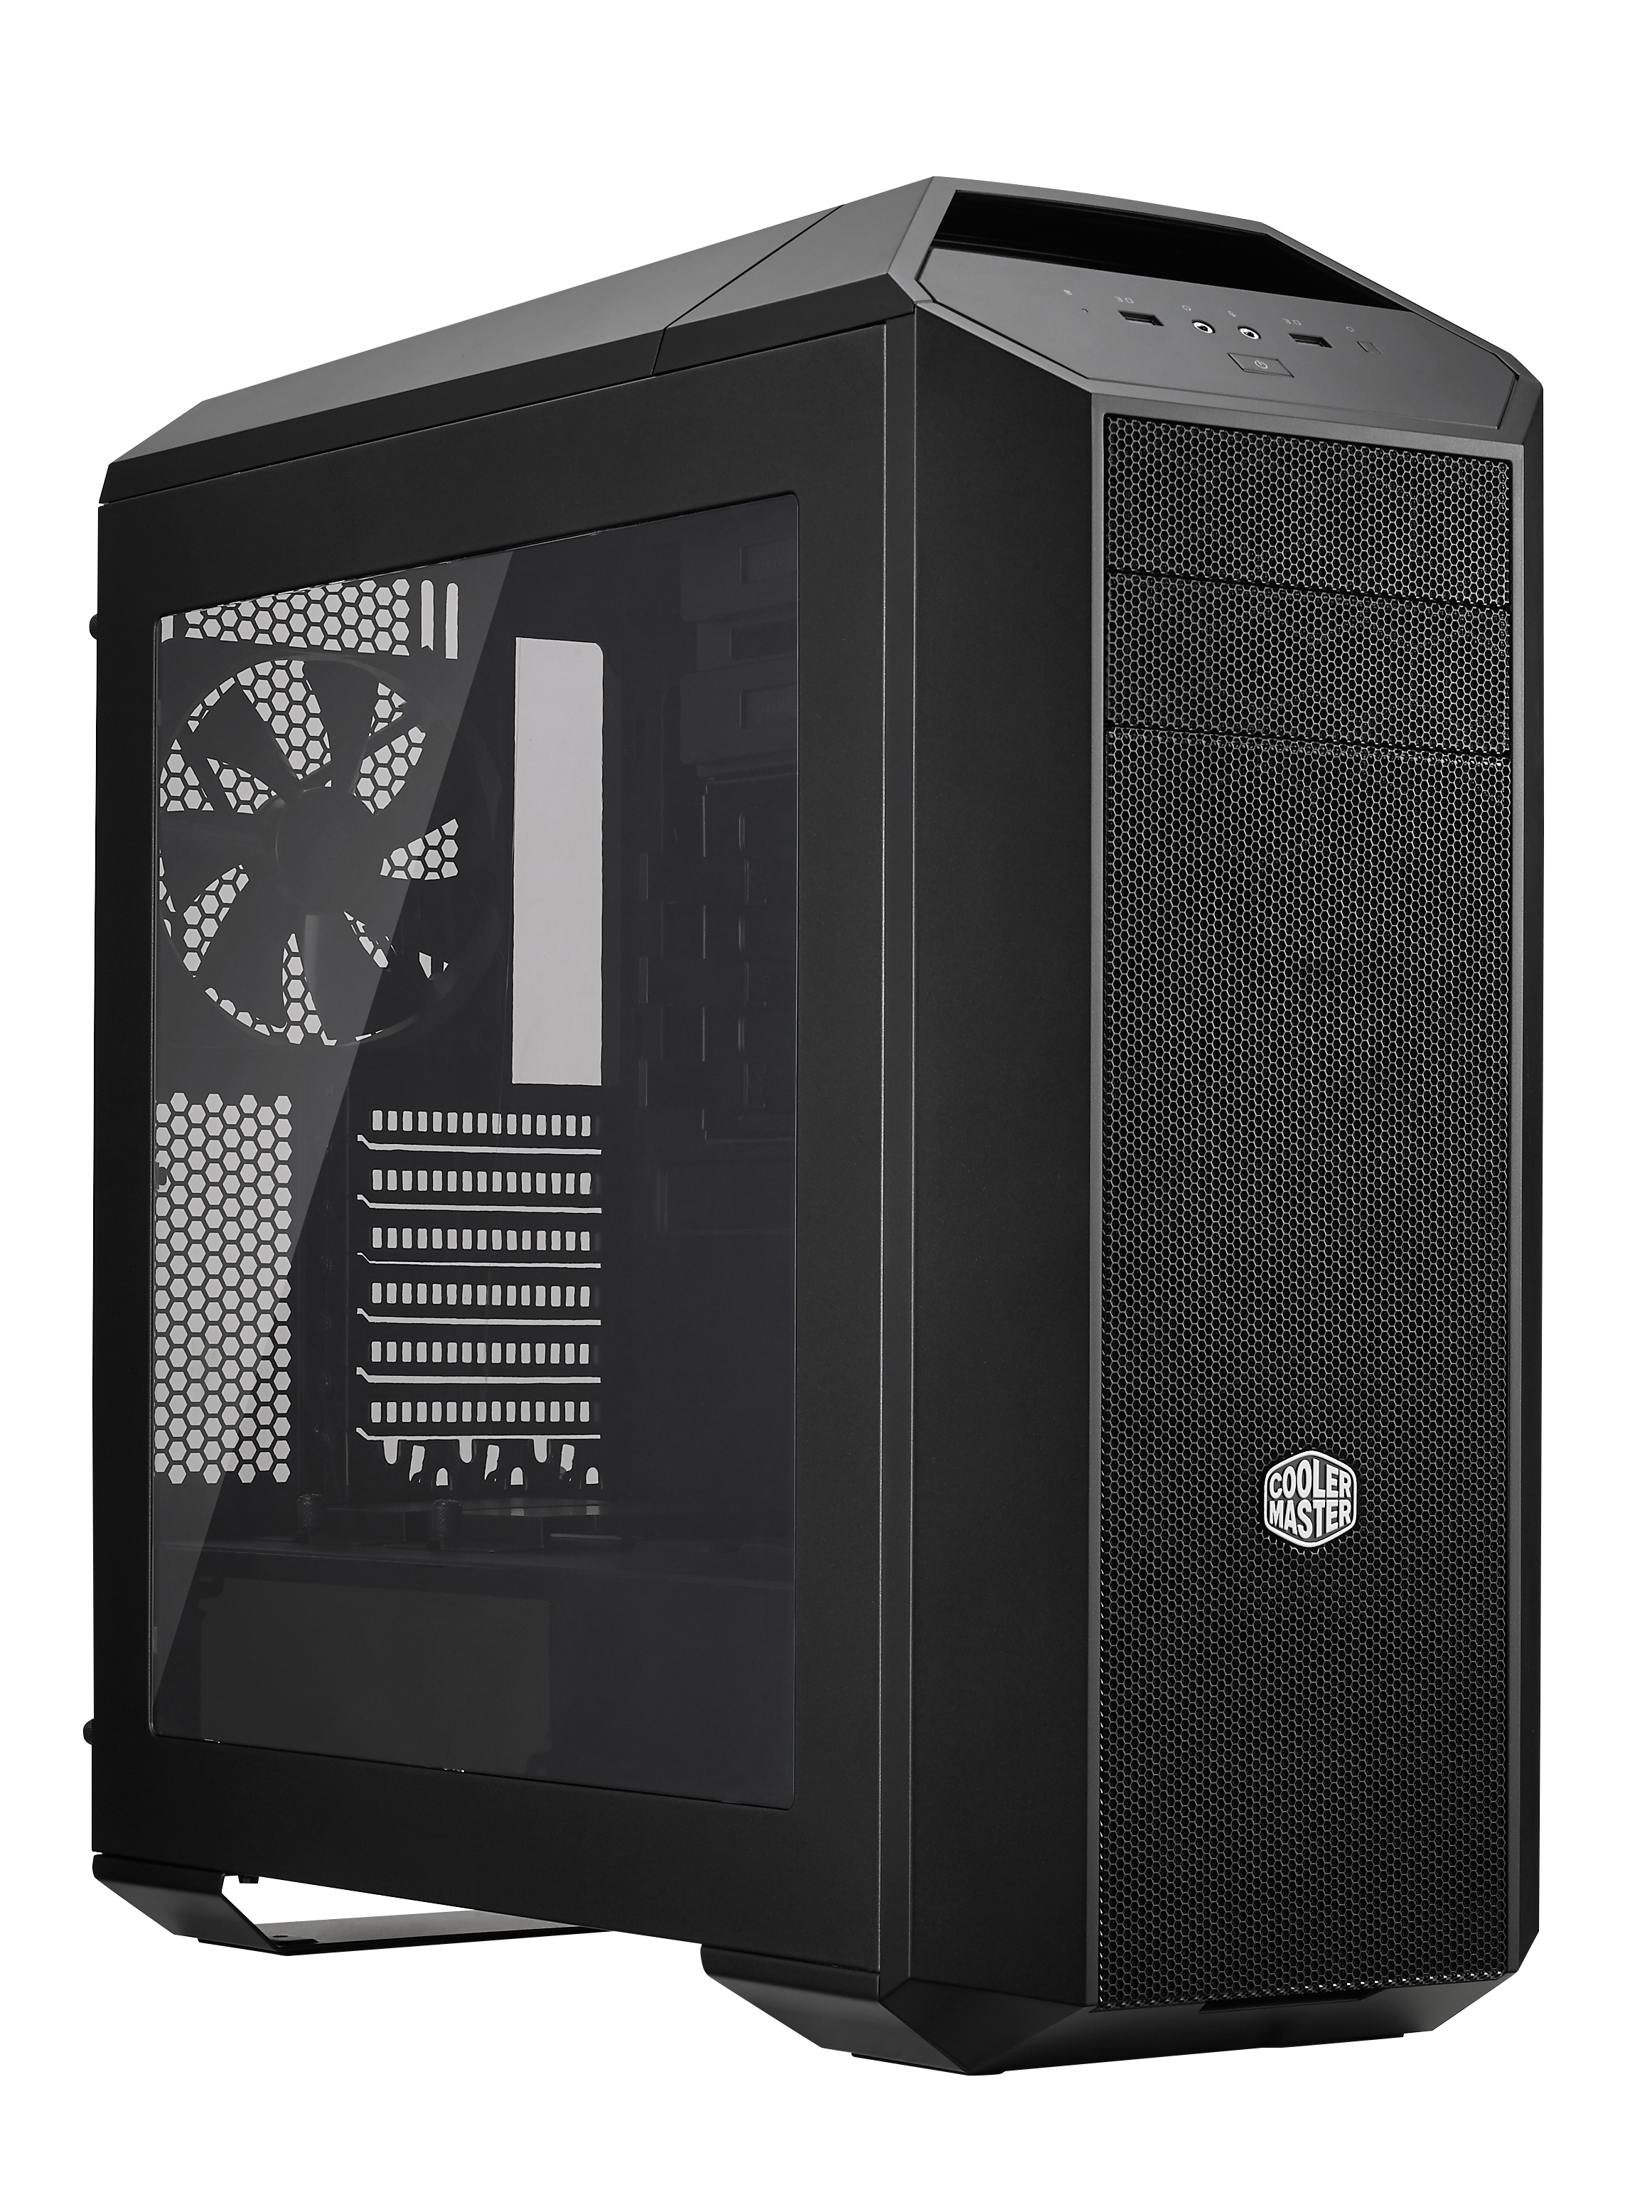 Mastercase 5 Cooler Master Id Cooling Tg 11